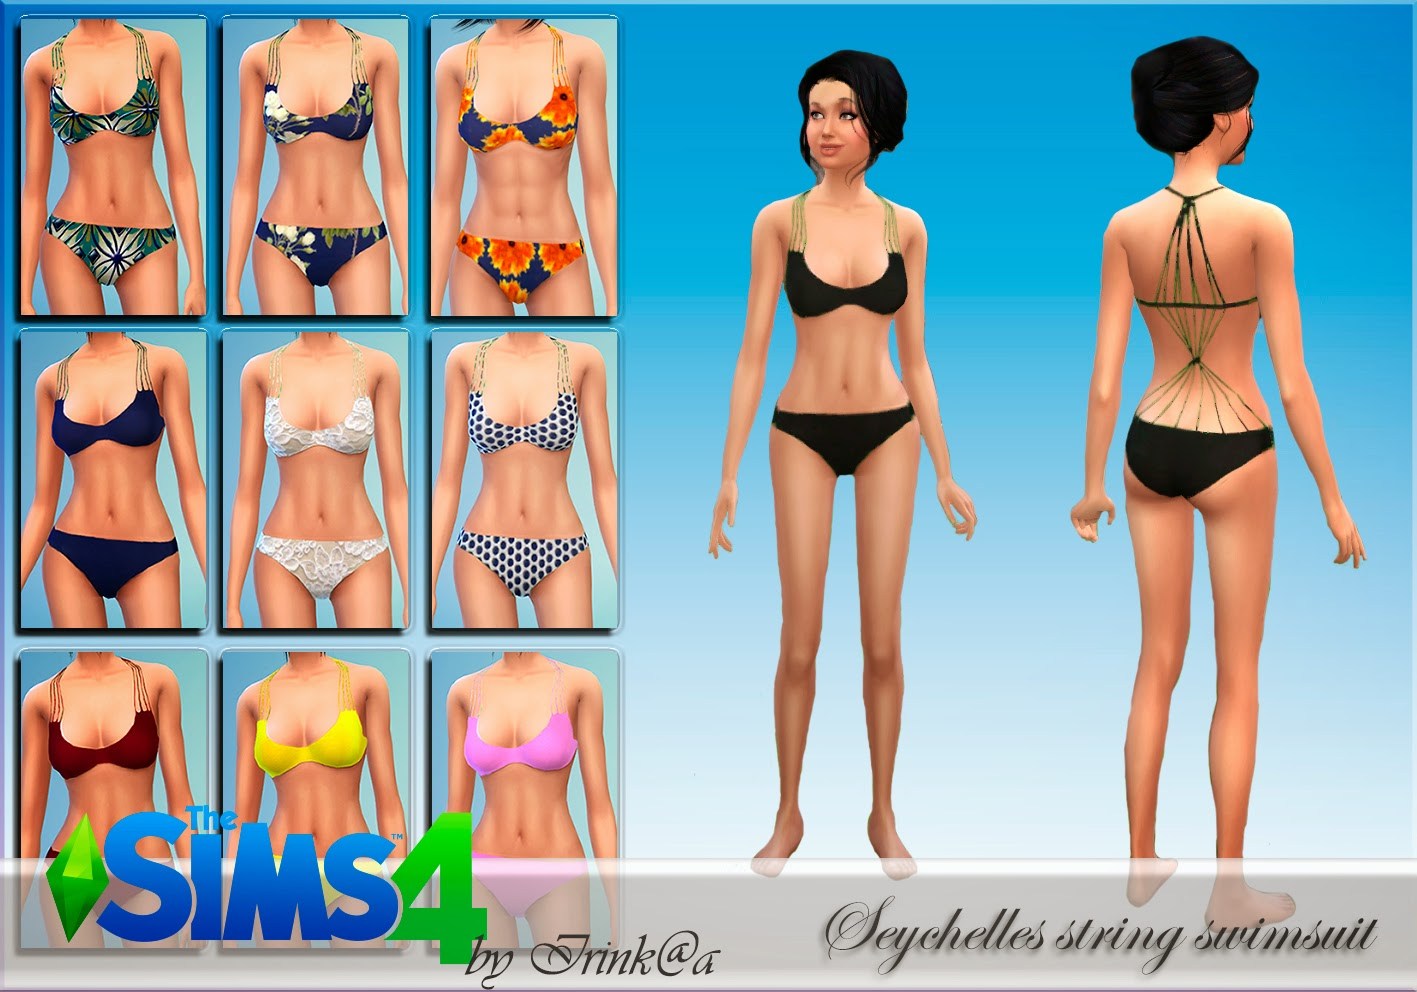 Seychelles string swimsuit by Irink@a